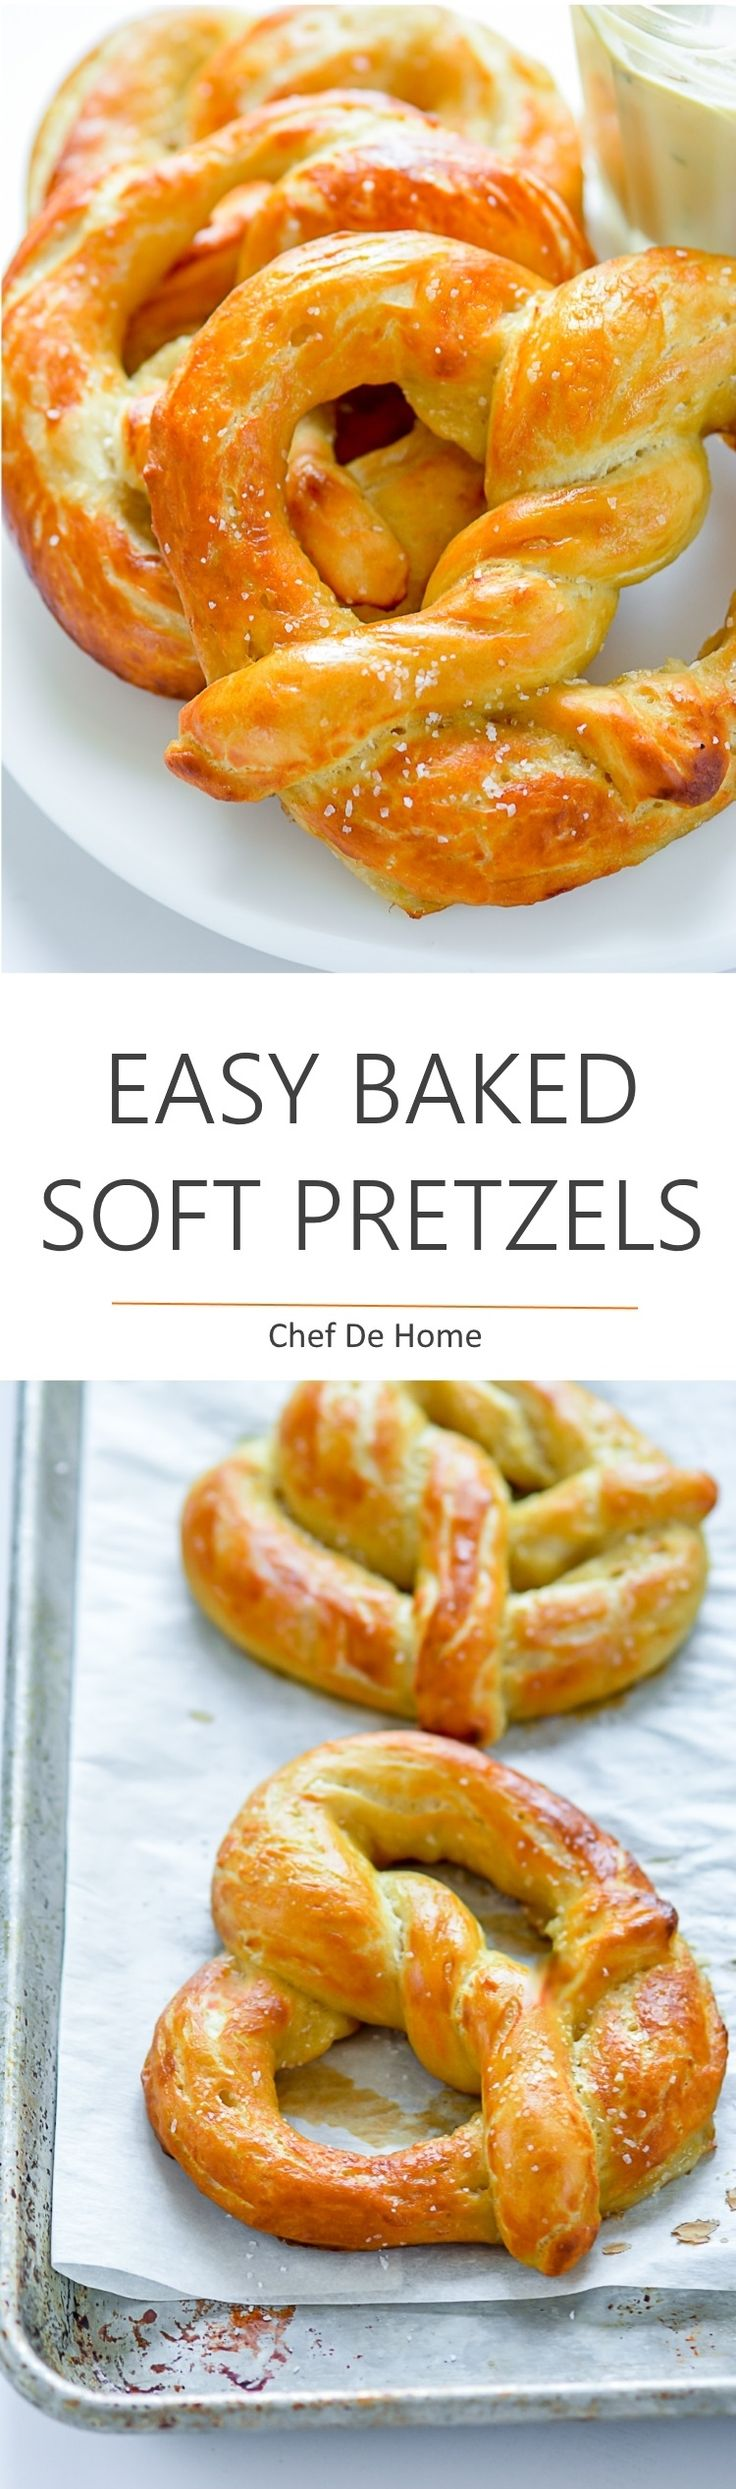 Easy and extra Soft Pretzels favorite of kids and party friendly | chefdehome.com